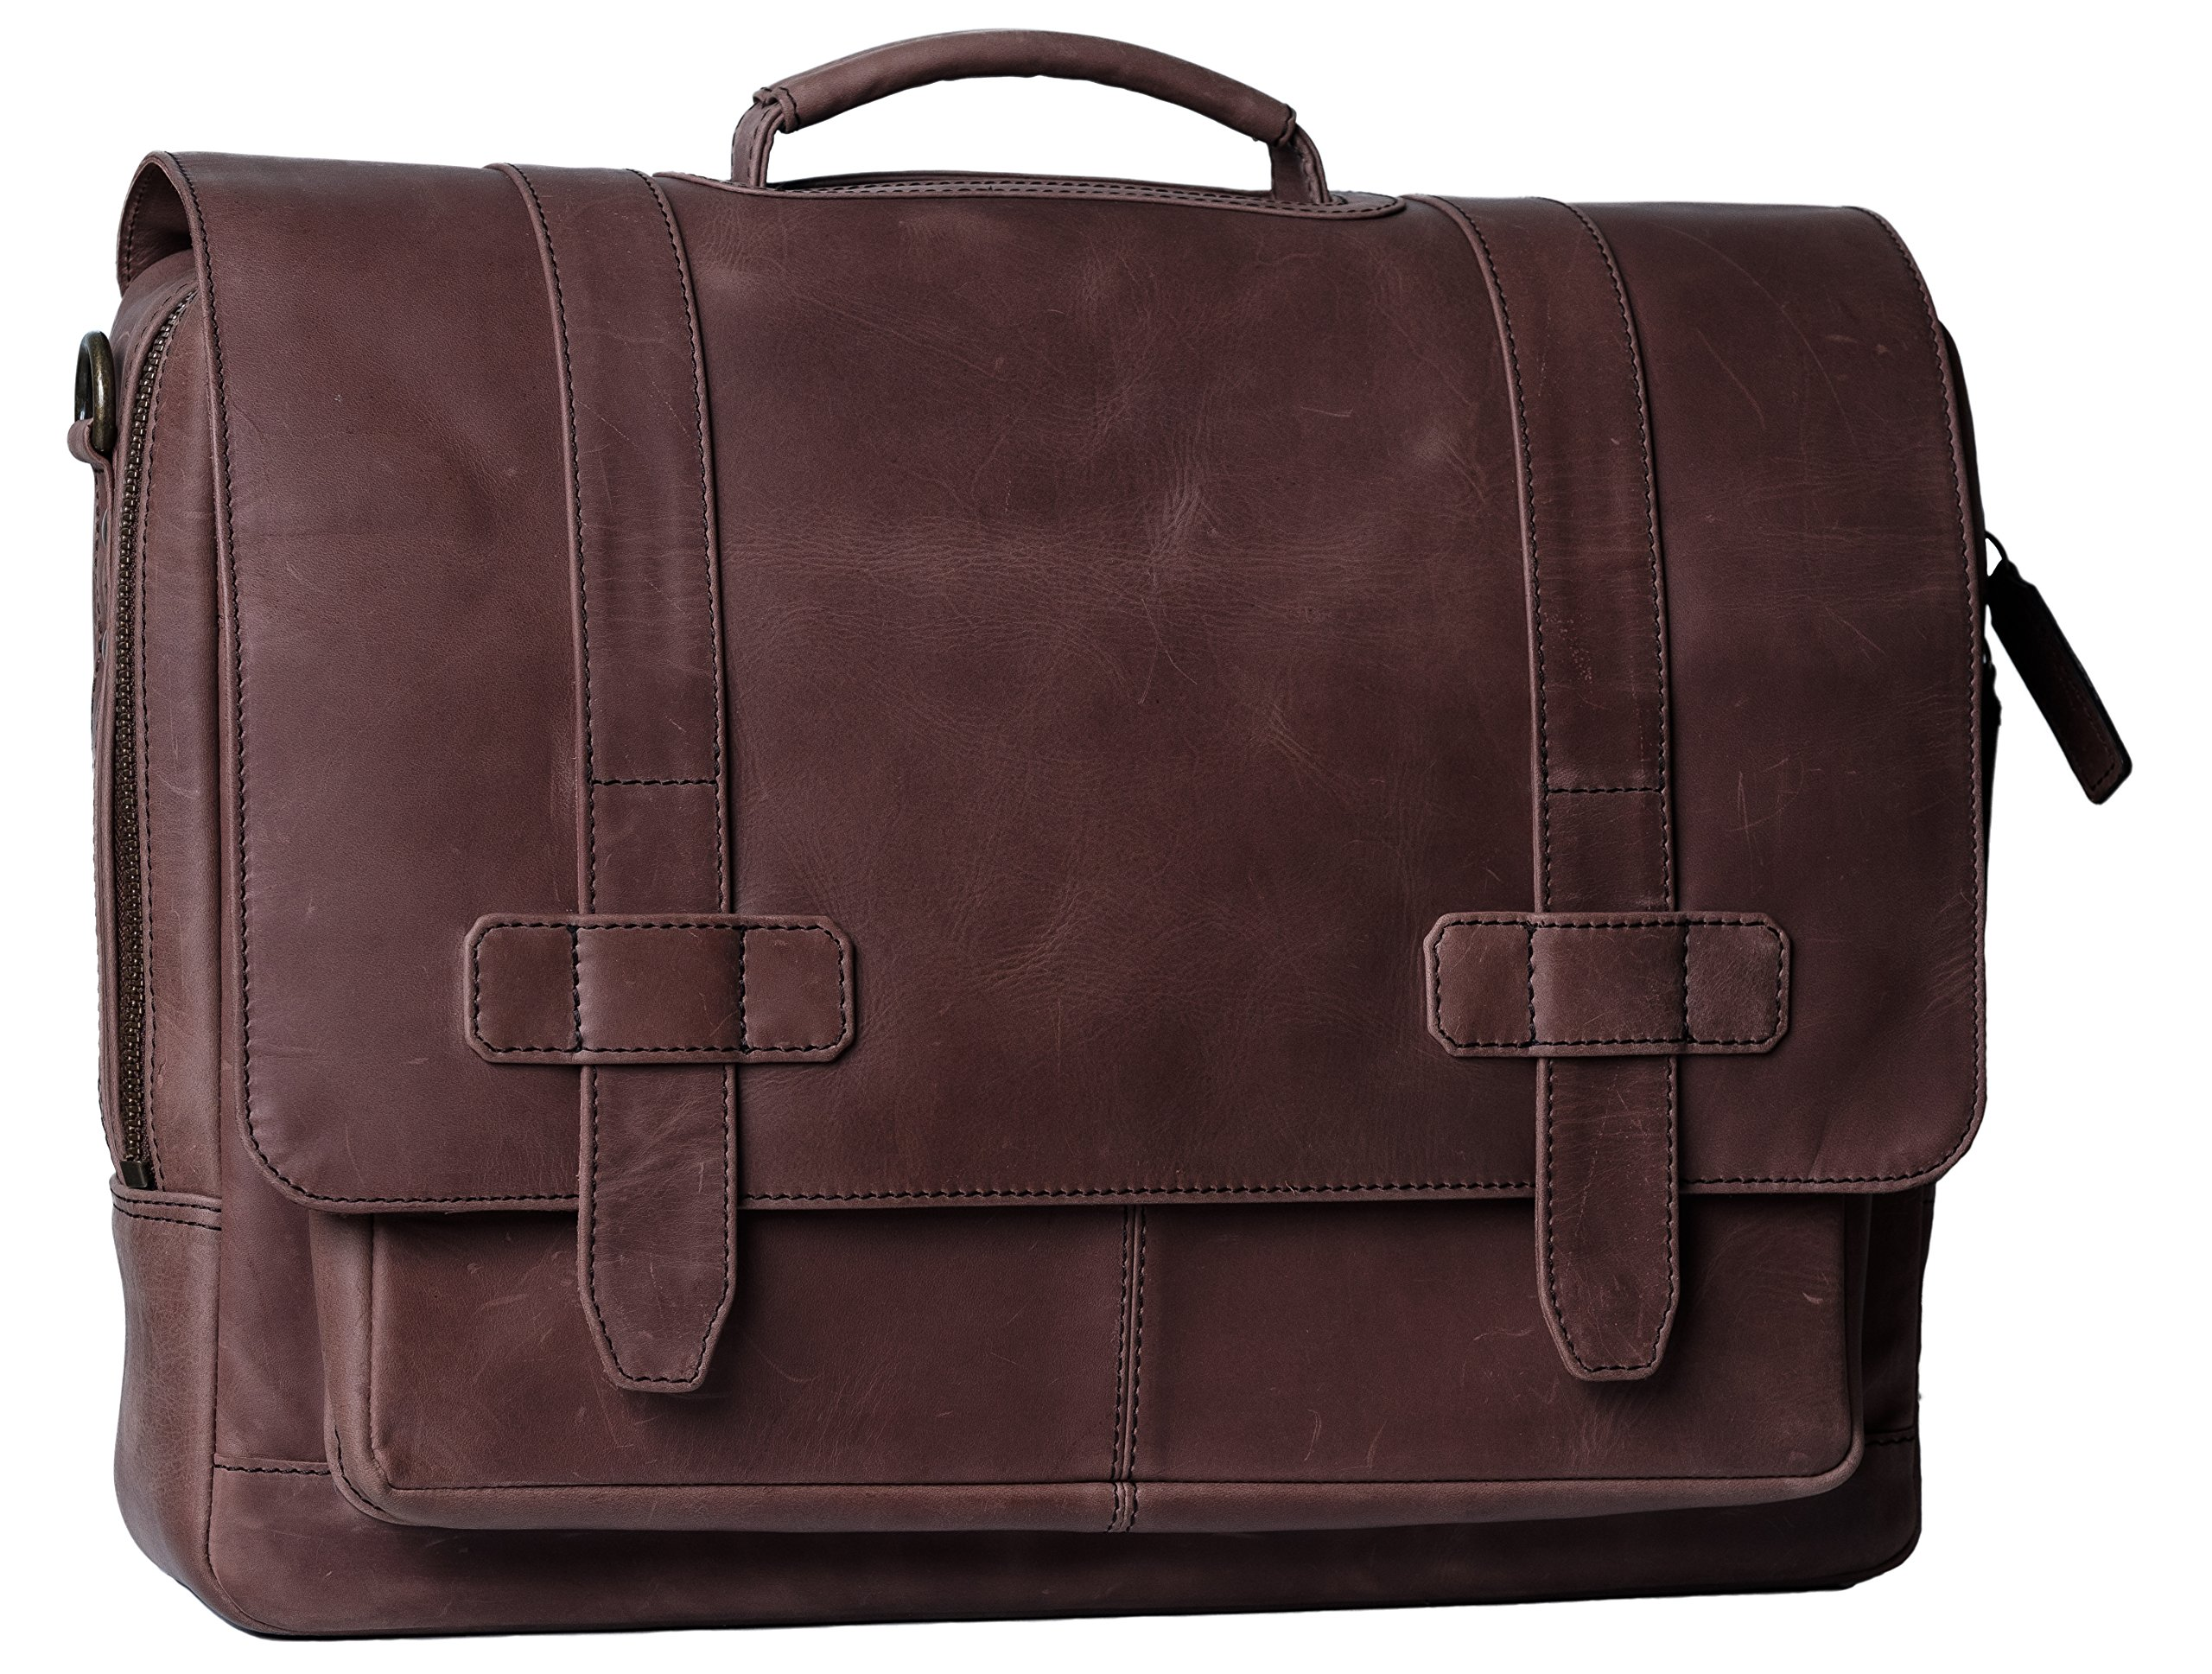 Genuine Leather Messenger Laptop Bag/Briefcase for Men, LOGAN, fits 15.4 inch Laptop, adjustable strap, 16 inch by 12 inch by 4 inch (Chestnut Brown) by Ladderback by Ladderback